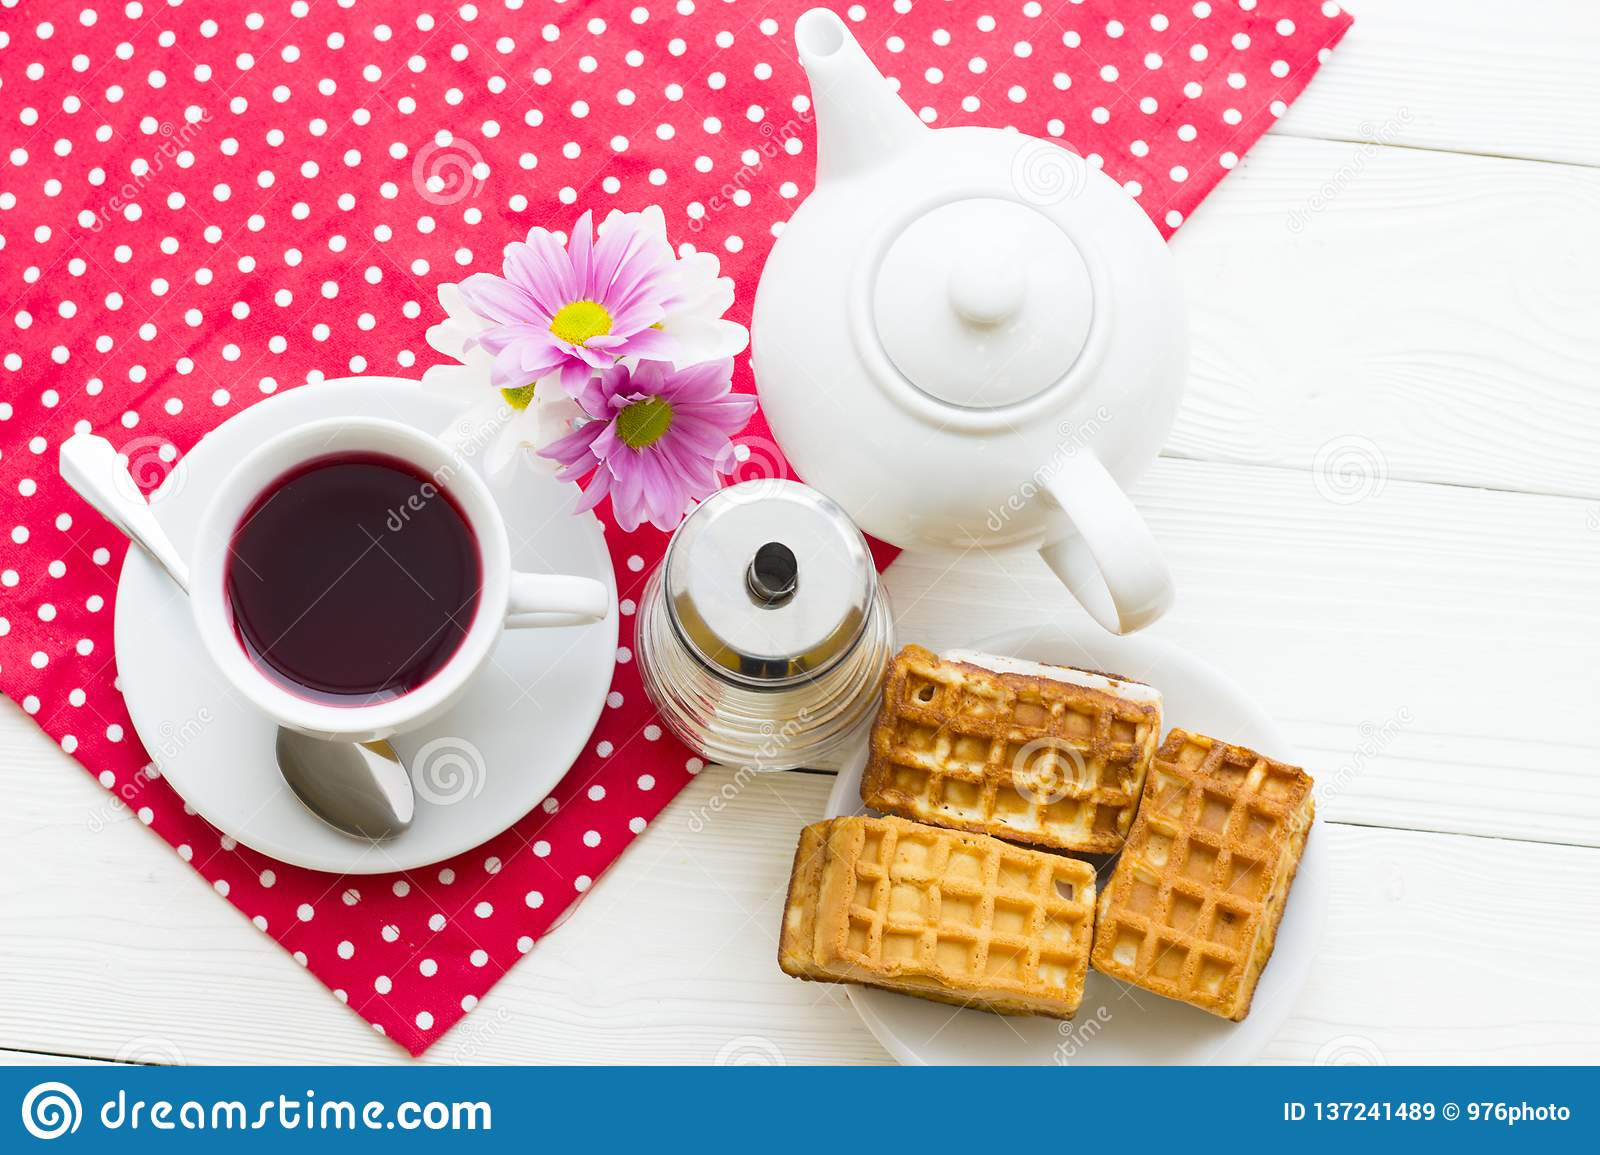 Black tea ceremony - a cup of tea, teapot, sugar, cakes, flowers on a red with white dots background